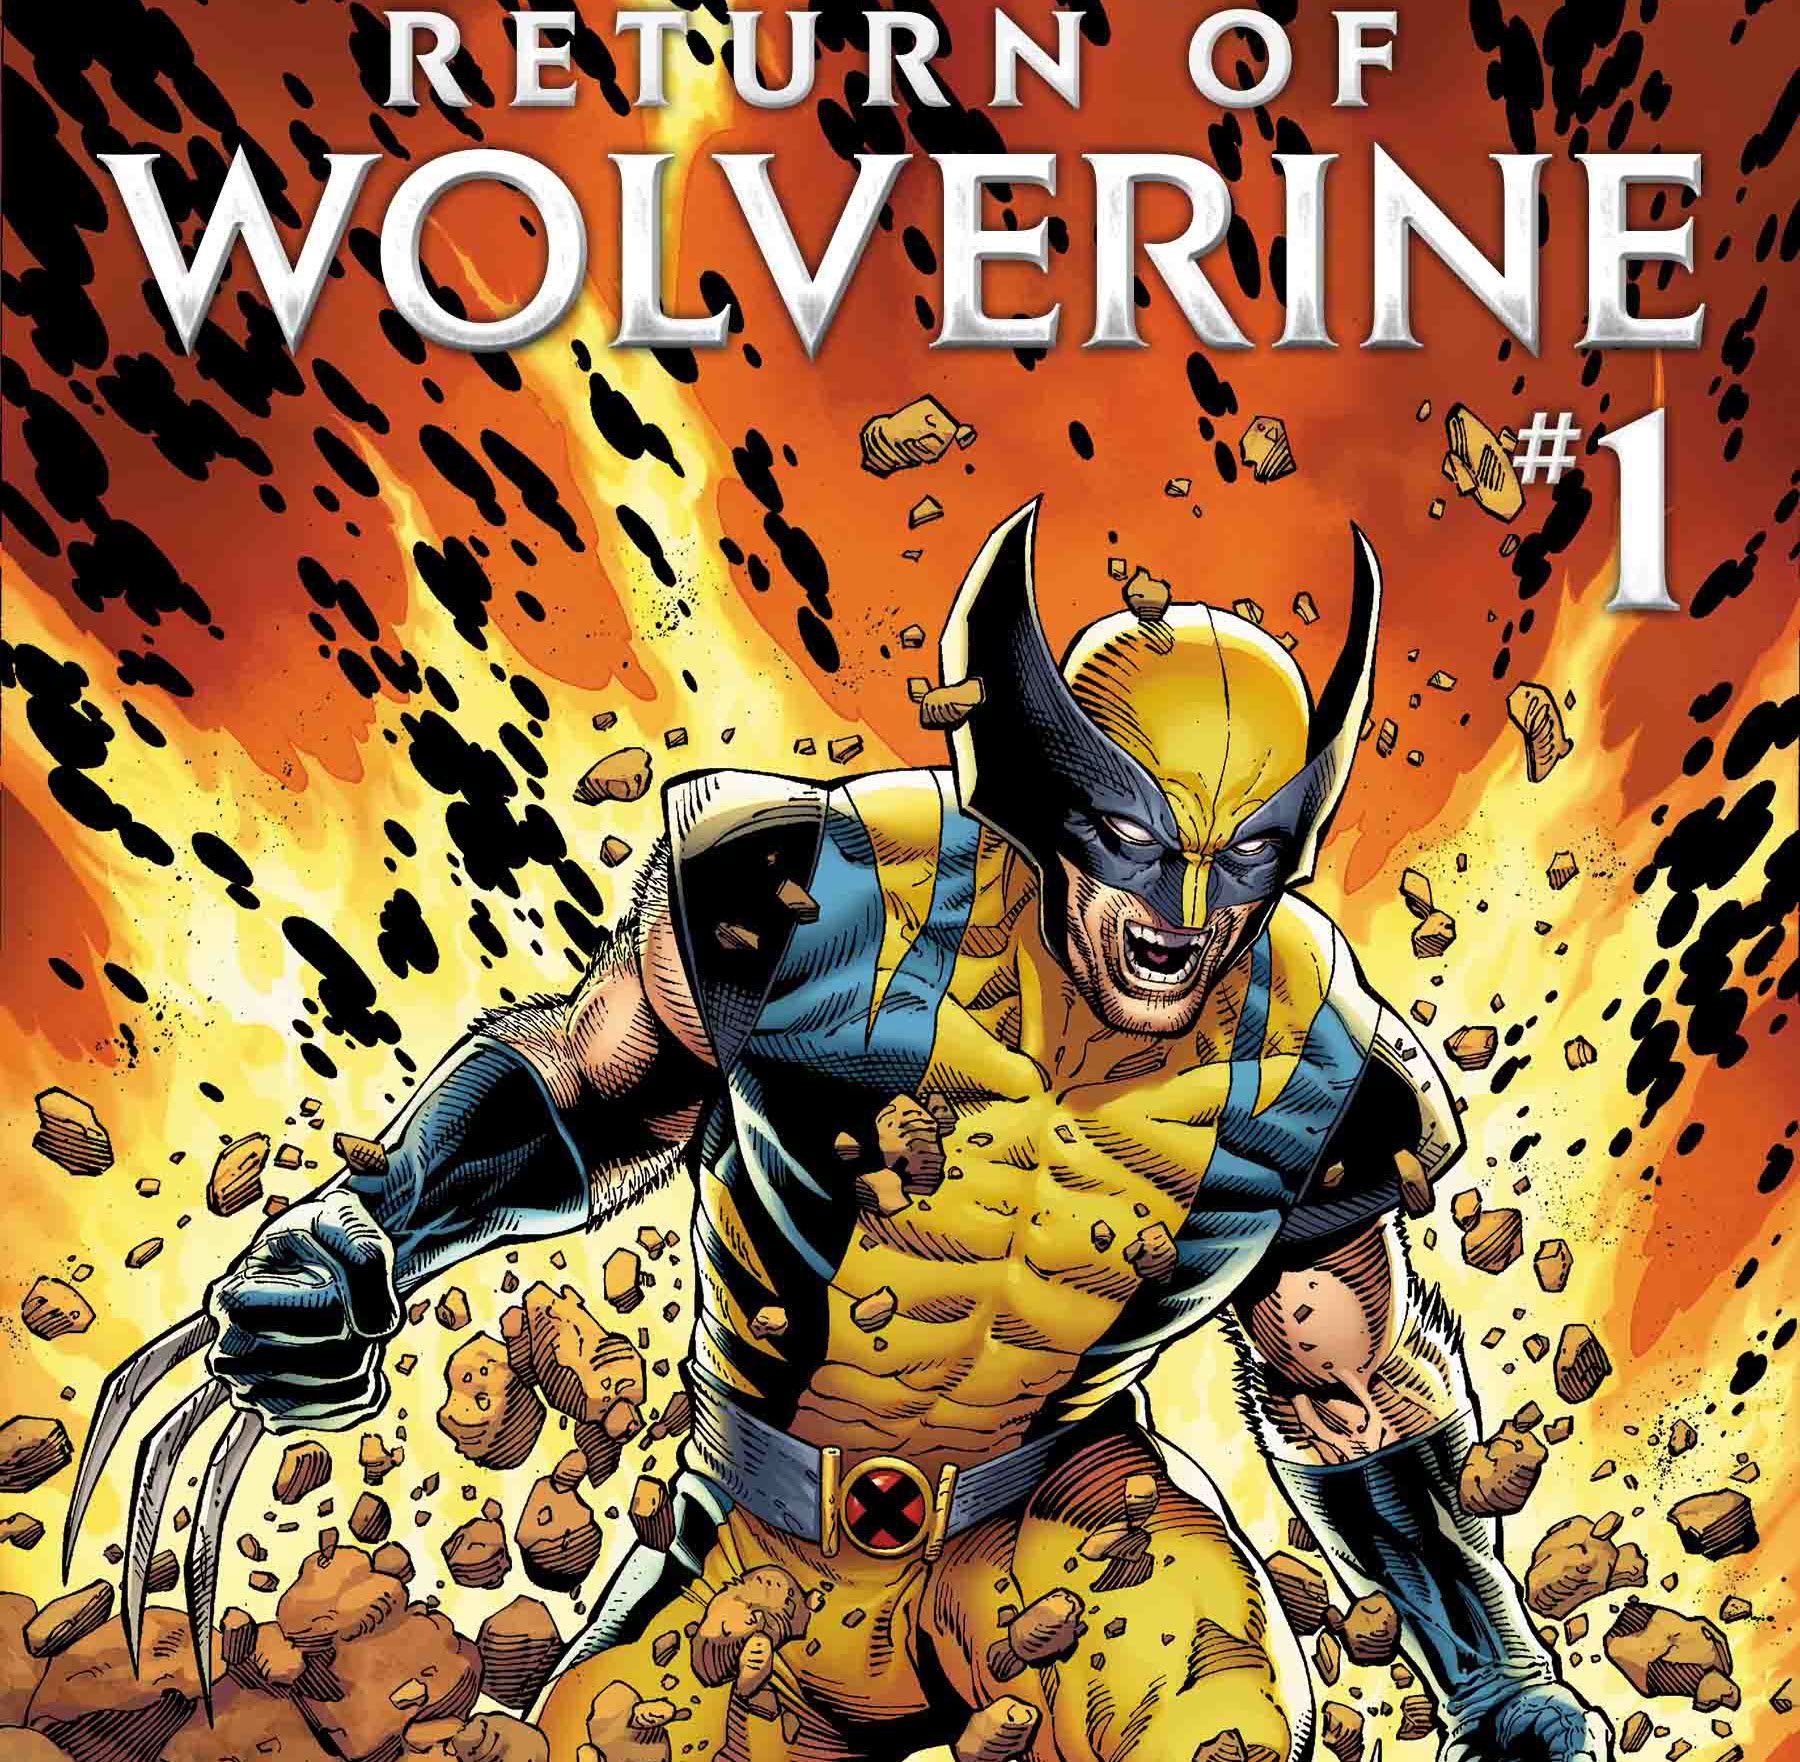 267c70a077a Wolverine Returns, SPIDERGEDDON Arrives, POE DAMERON Ends, and More ...